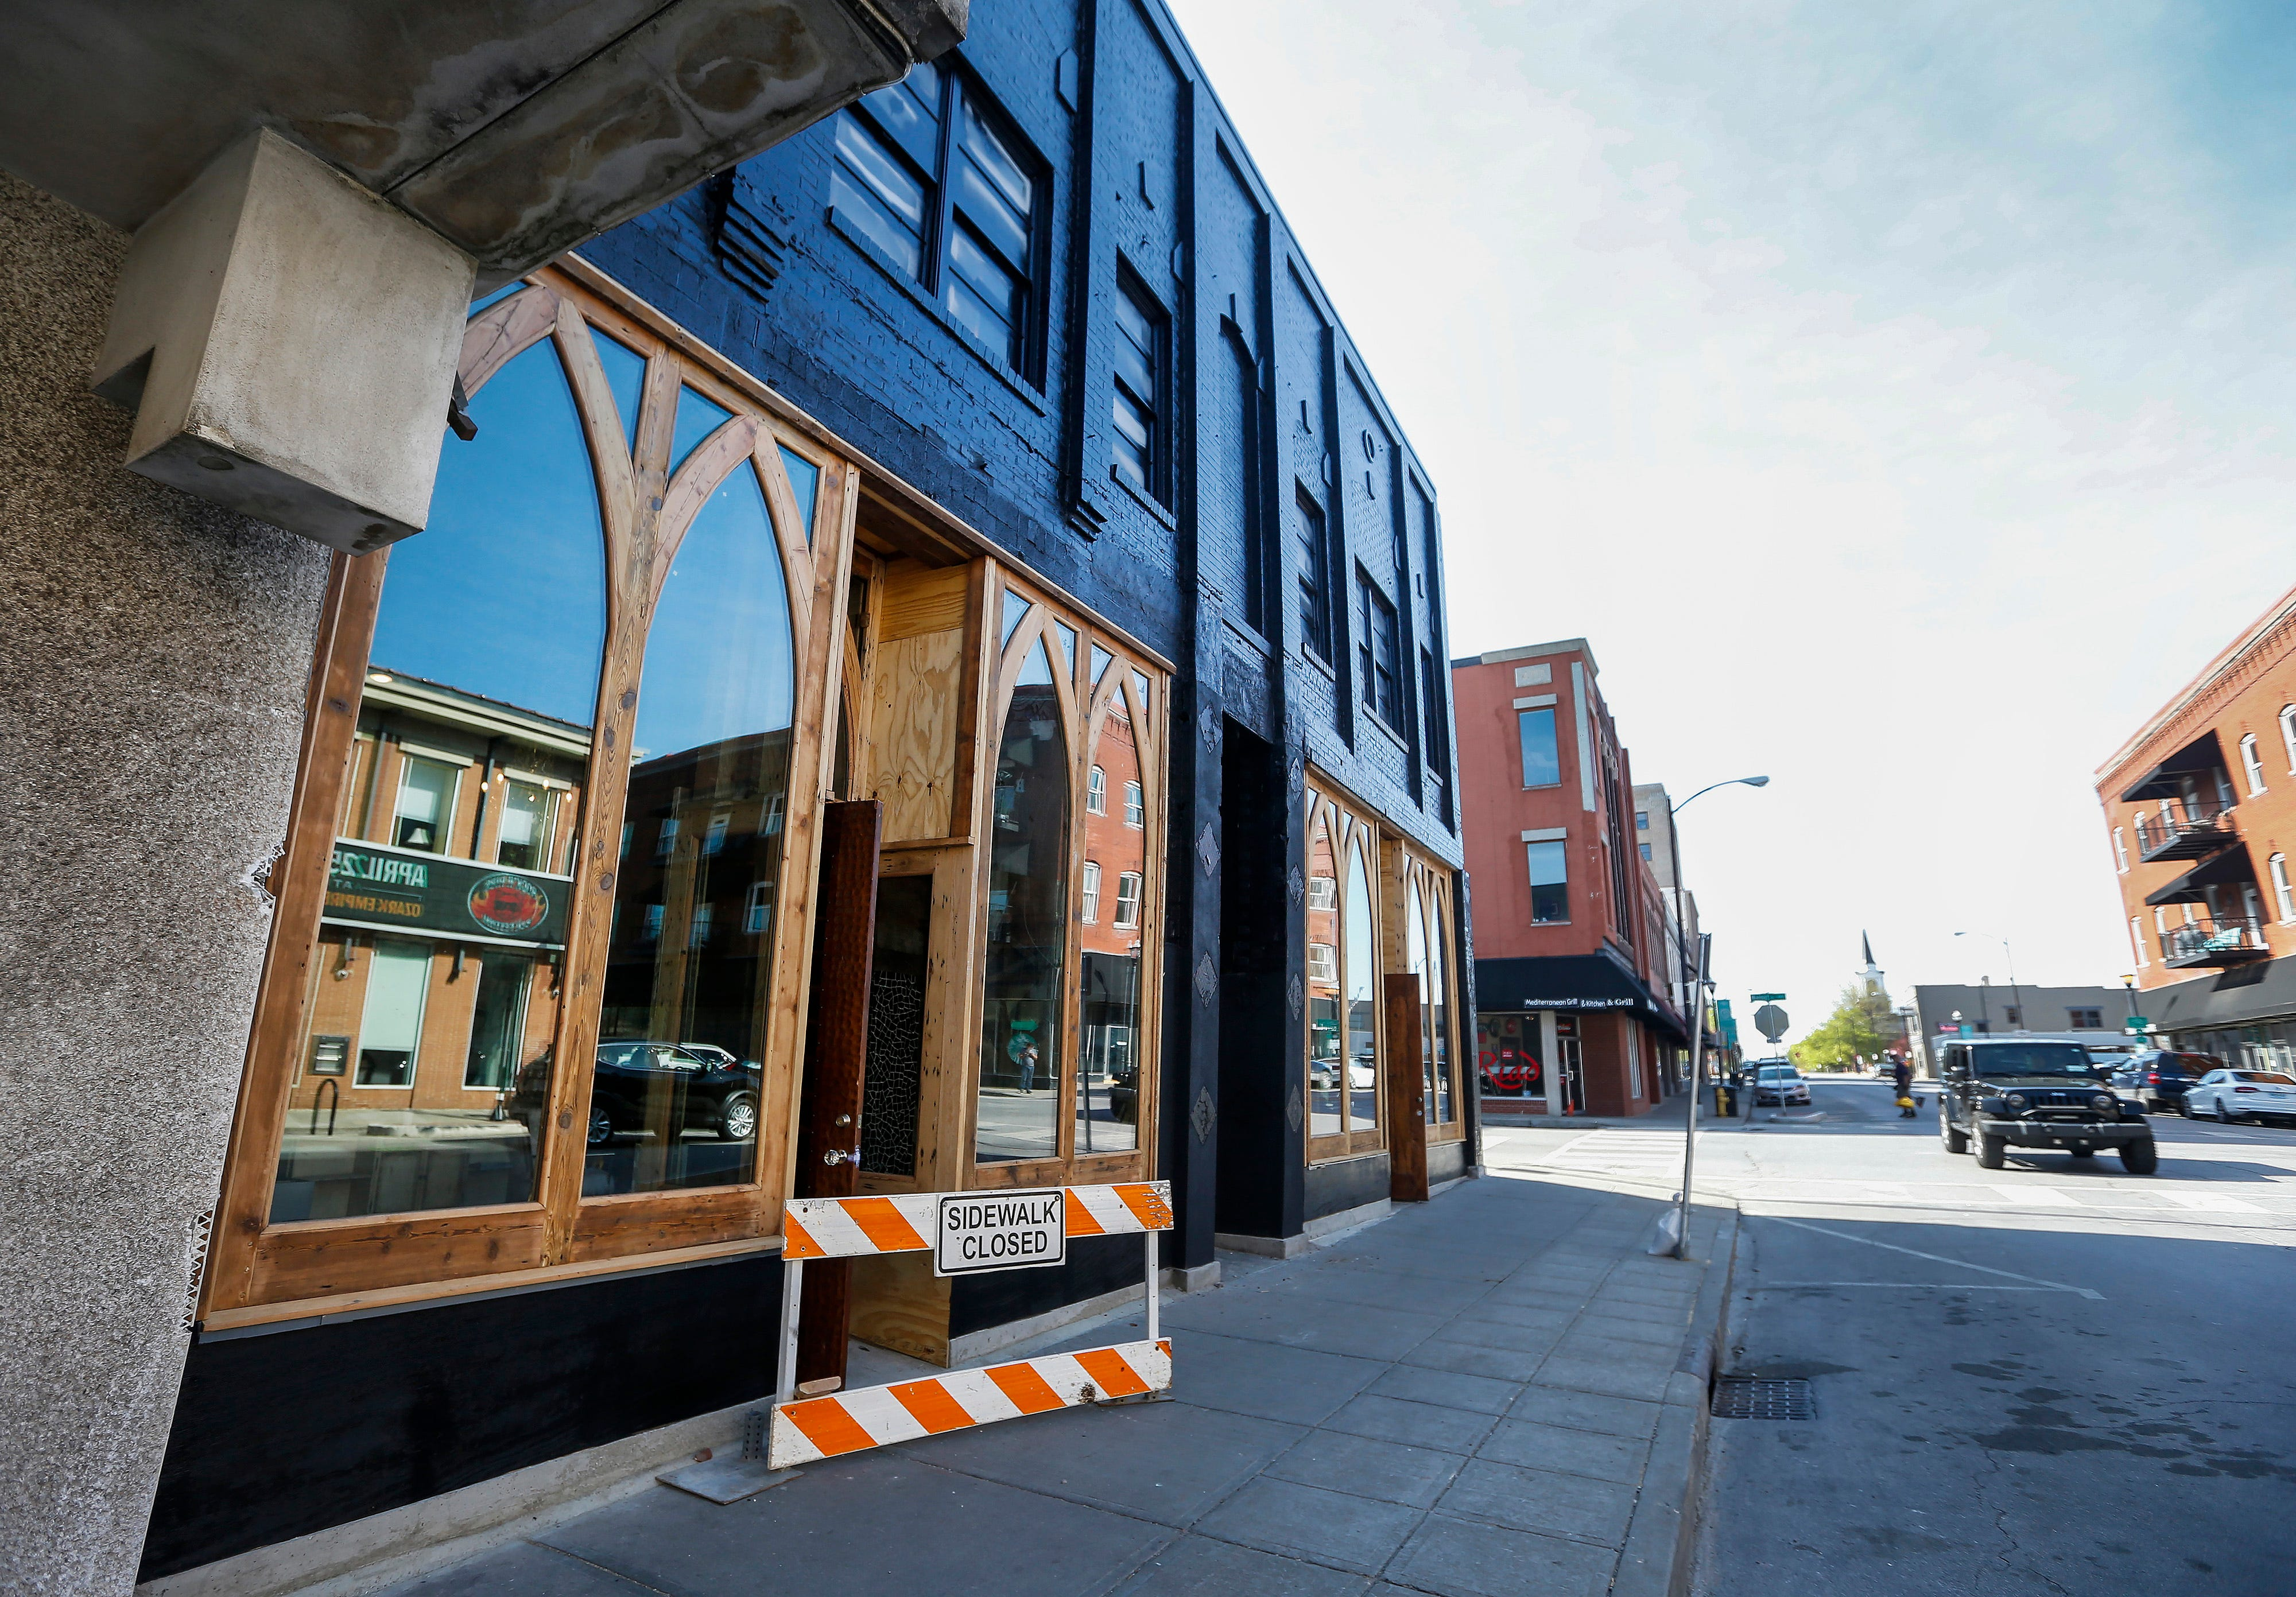 The building at 328 South Avenue, once known as The Studio when owned by Lou Whitney, is undergoing renovations.